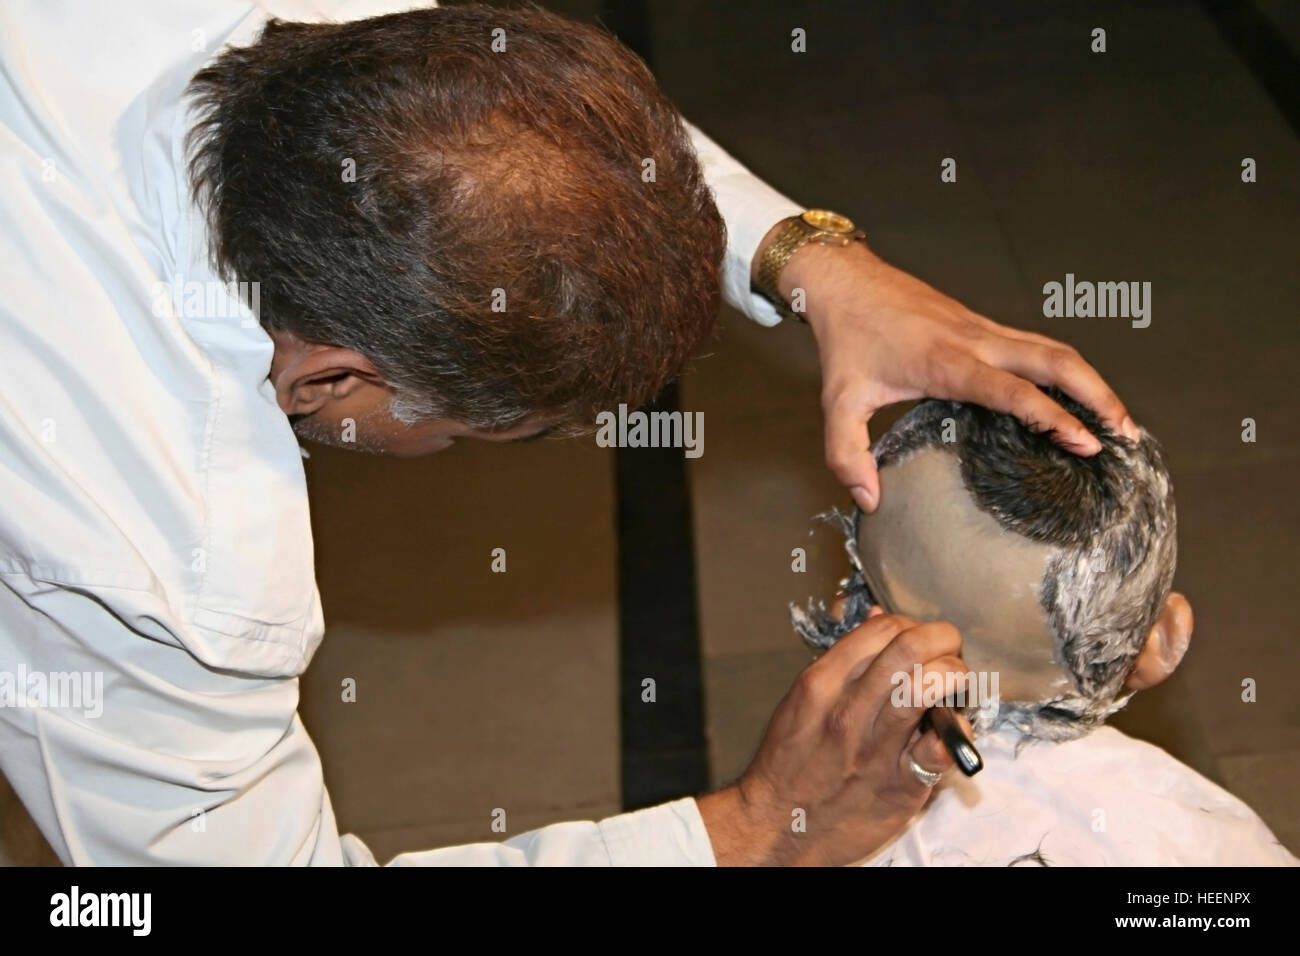 Getting a hair-cut for threading ceremony, a typical Hindu ritual